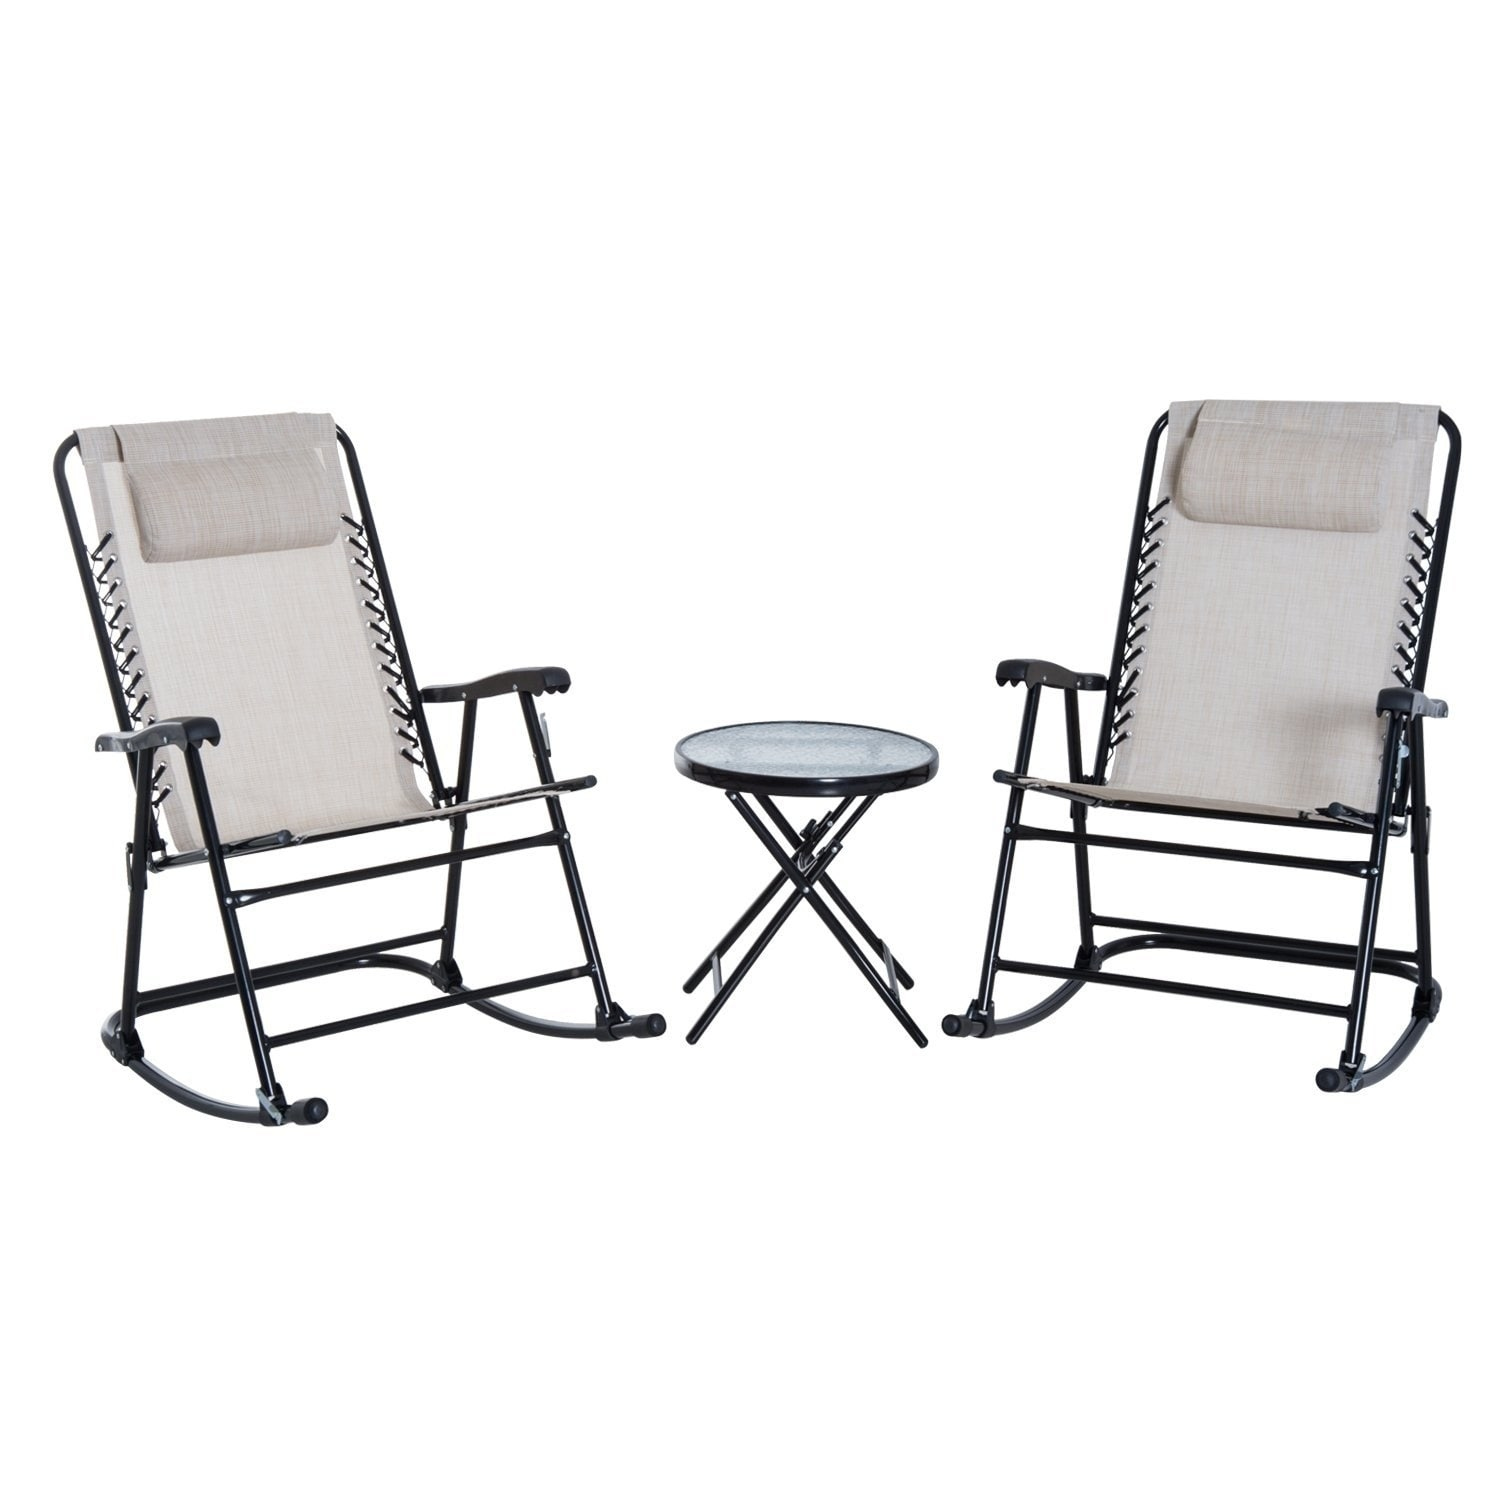 Patio Rocker Chairs Details About Outsunny Outdoor Rocking Chair Patio Table Seating Set Folding Cream White